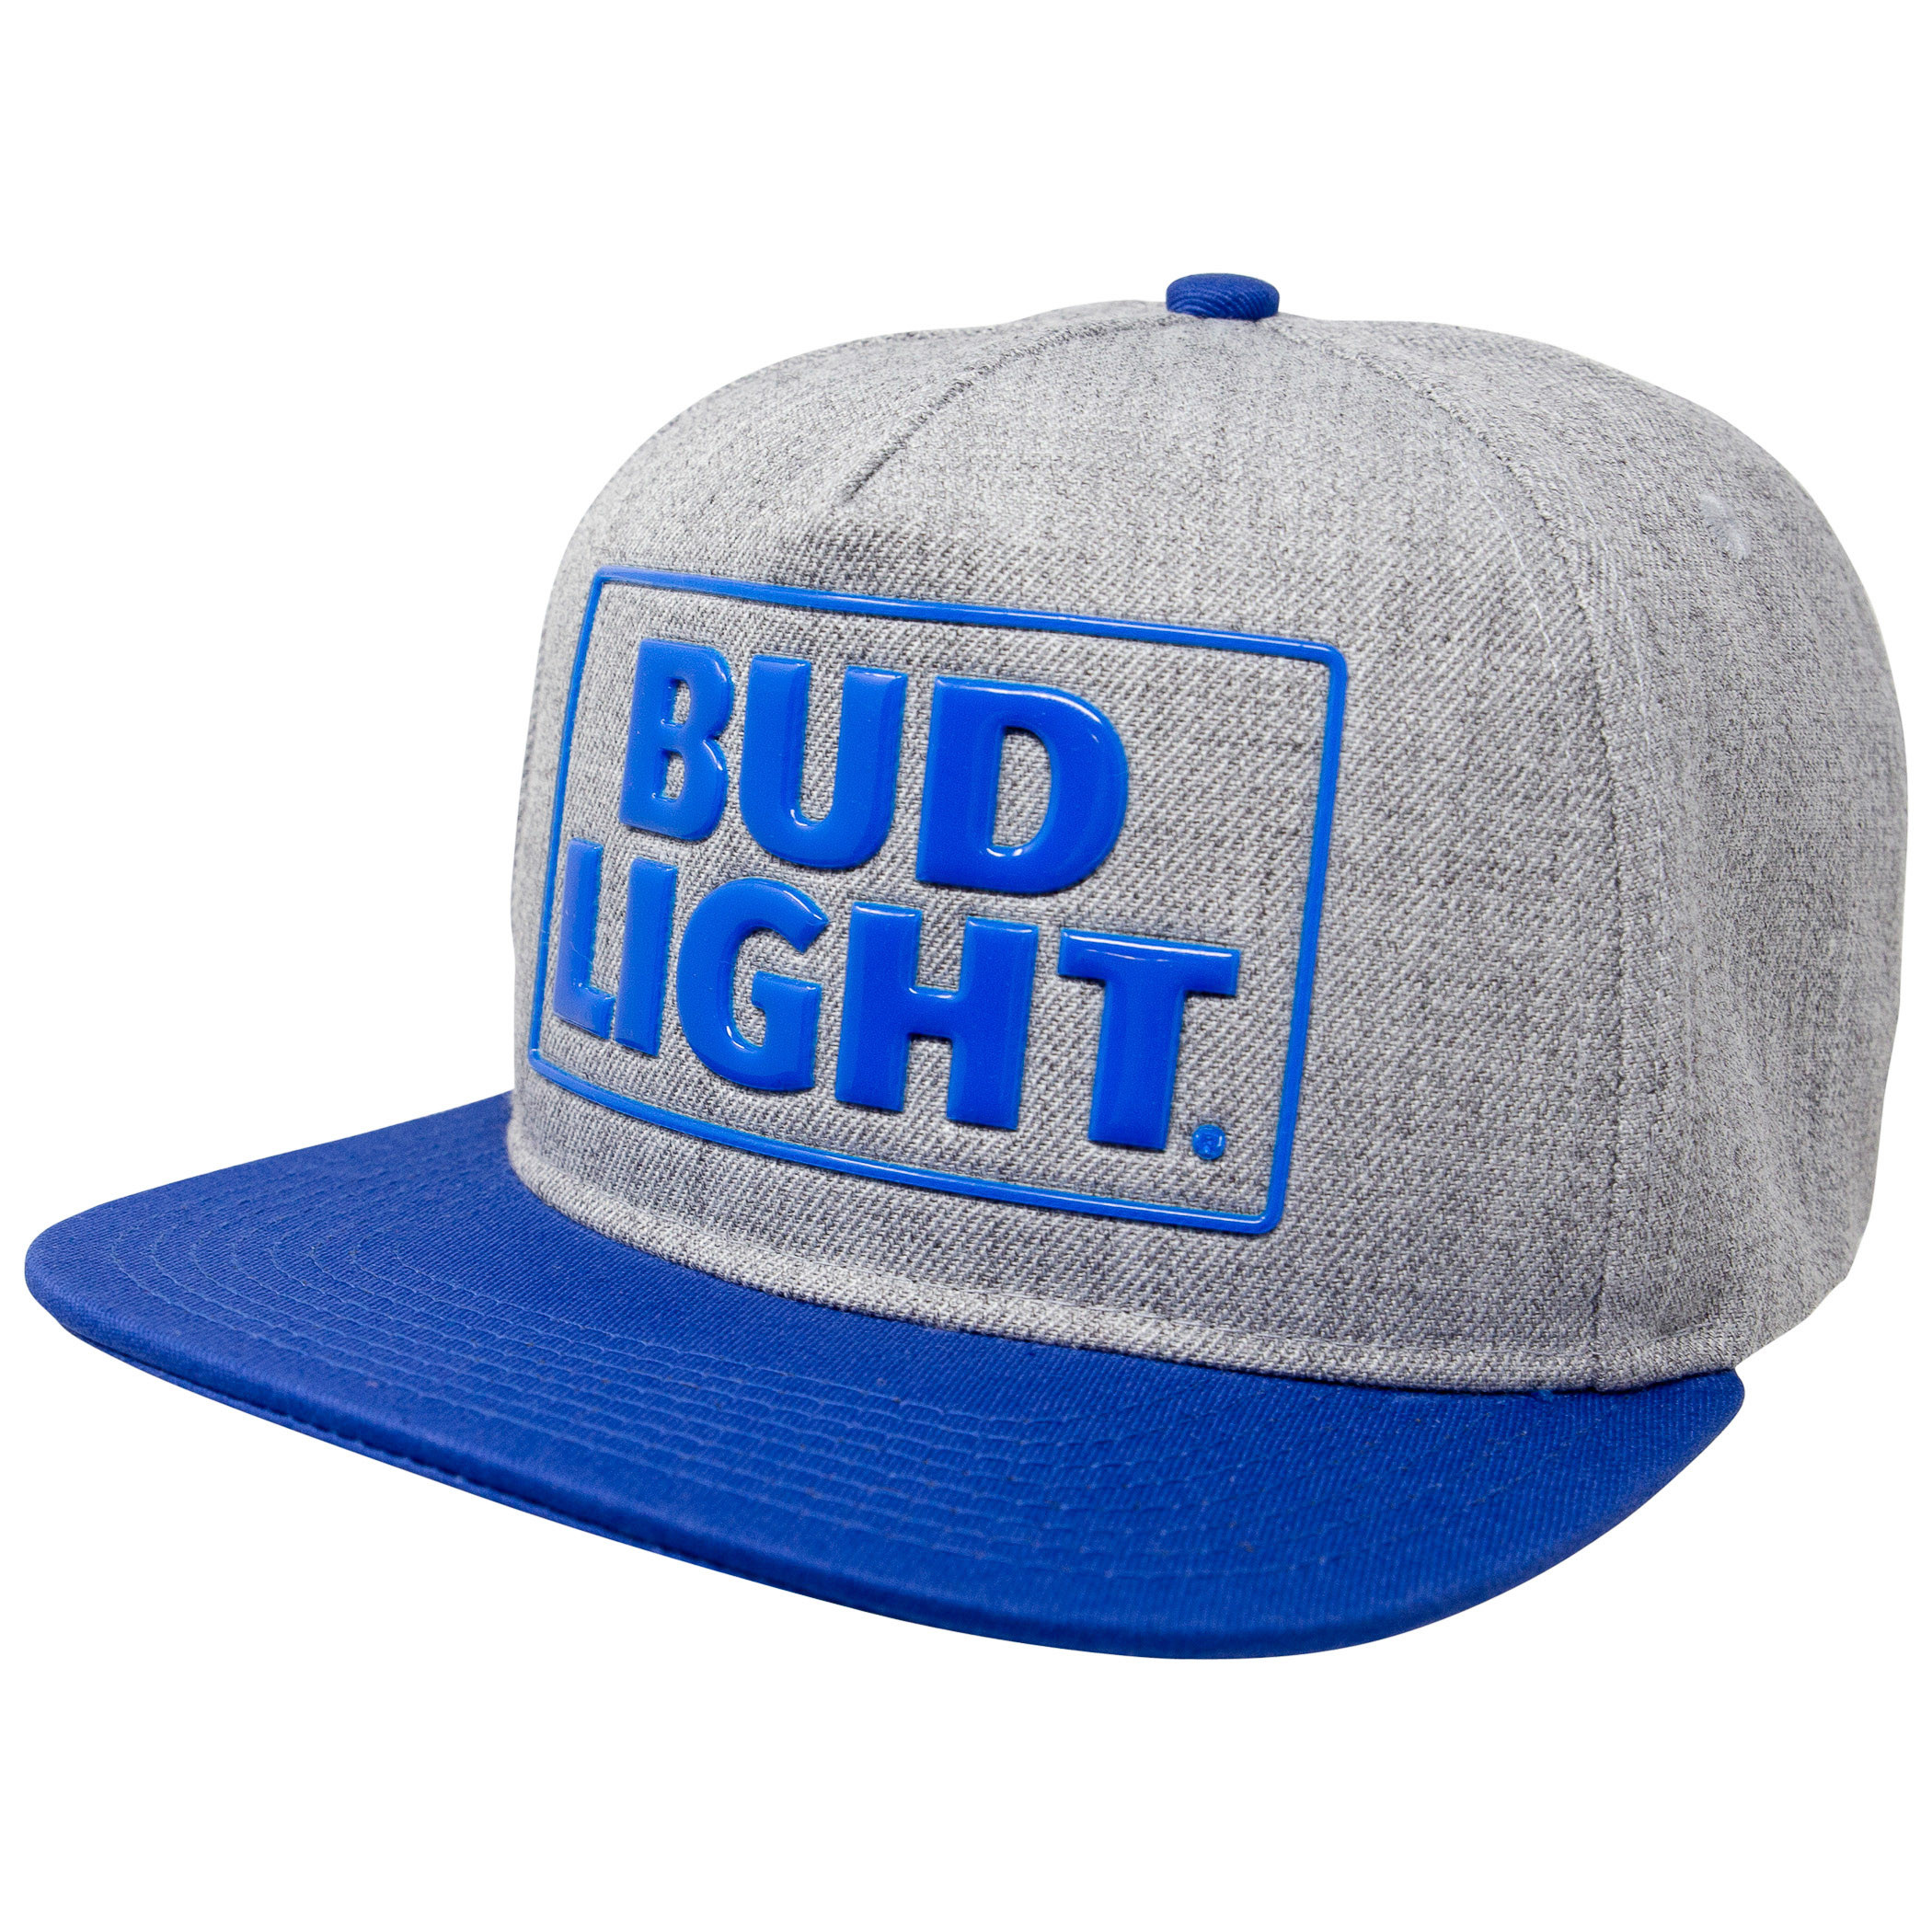 Bud Light Kappe